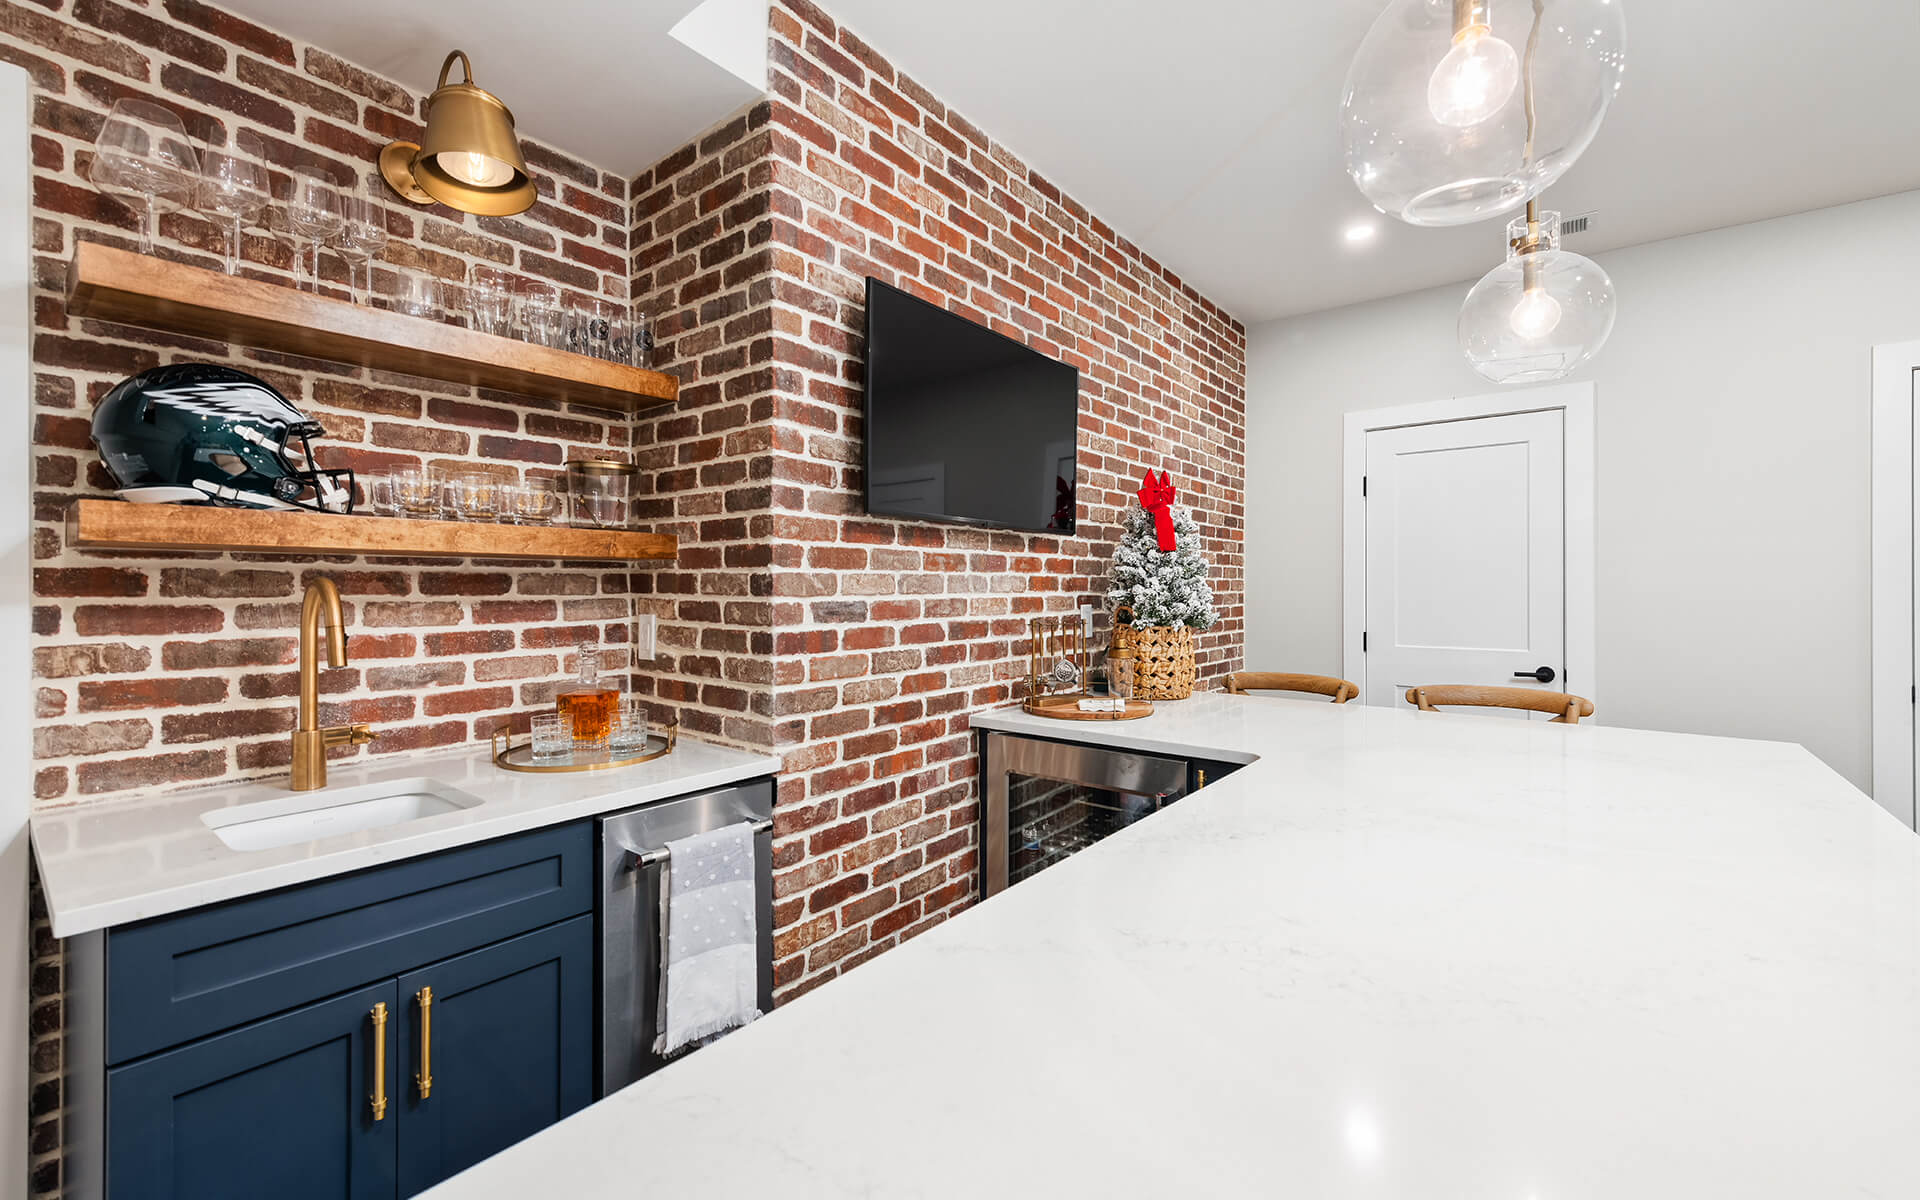 Finished Basement Project - Exposed Brick and Granite Bar